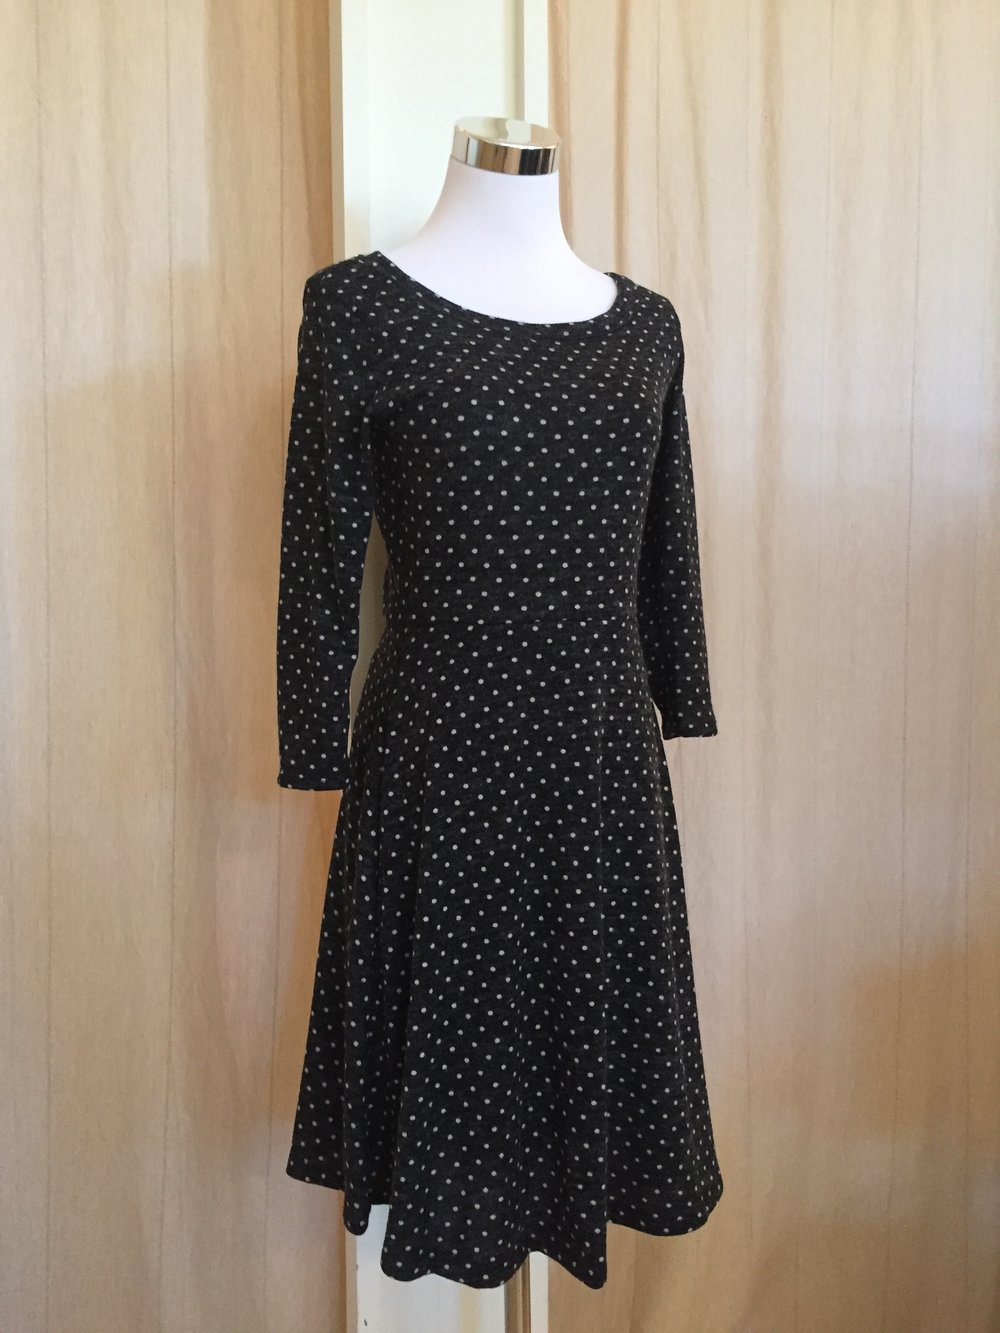 Gilli Polka Dot Dress $45